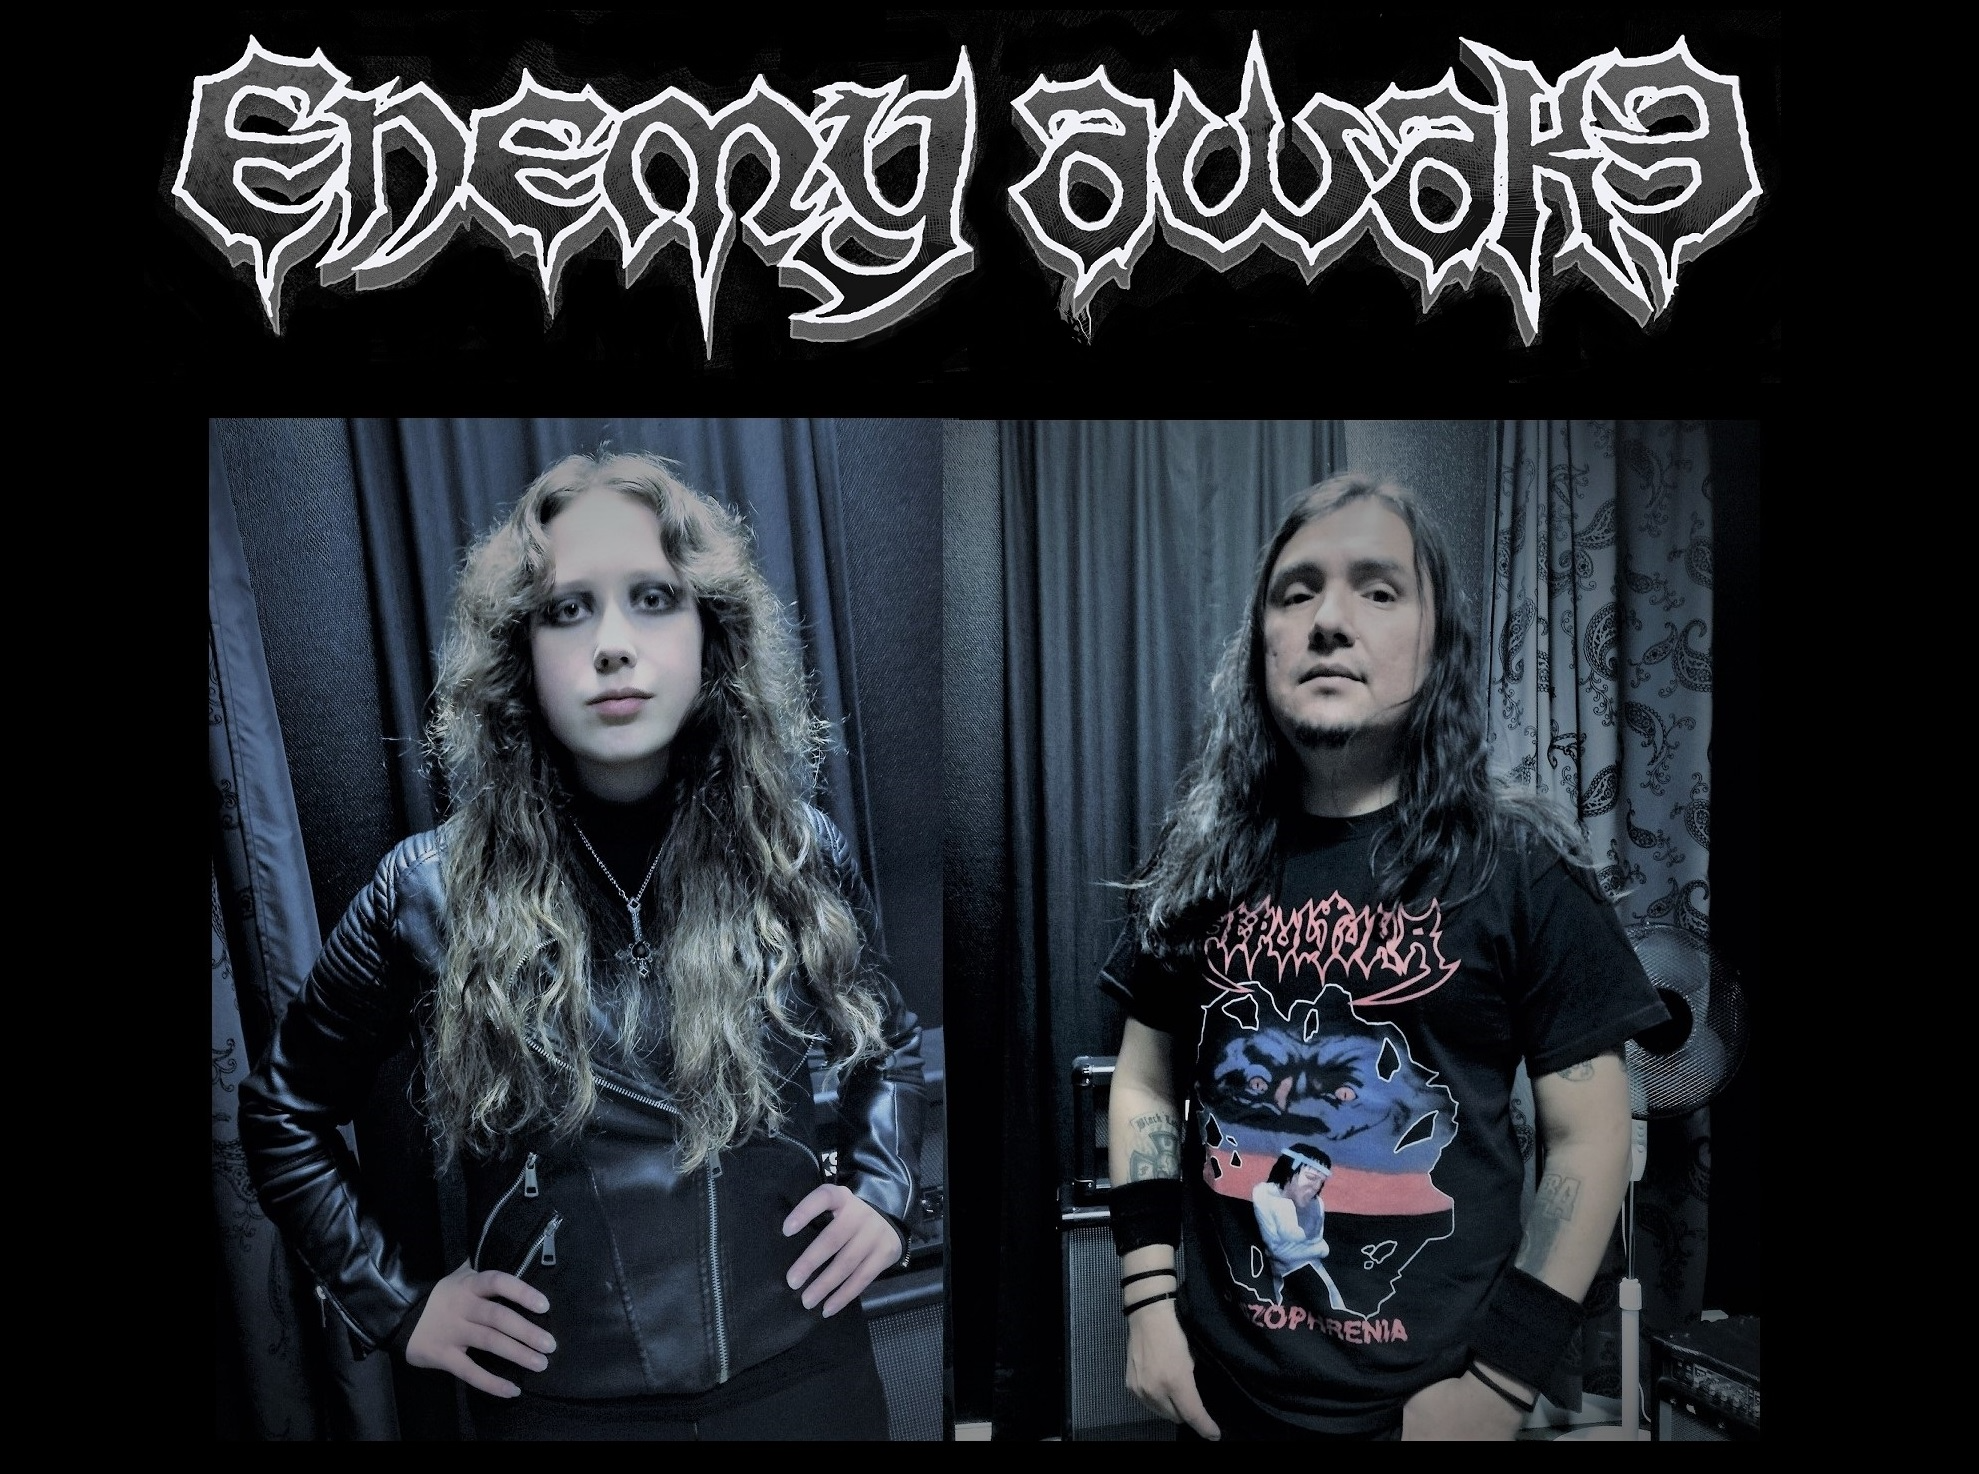 """ENEMY AWAKE release a new video for the track """"Hate""""."""